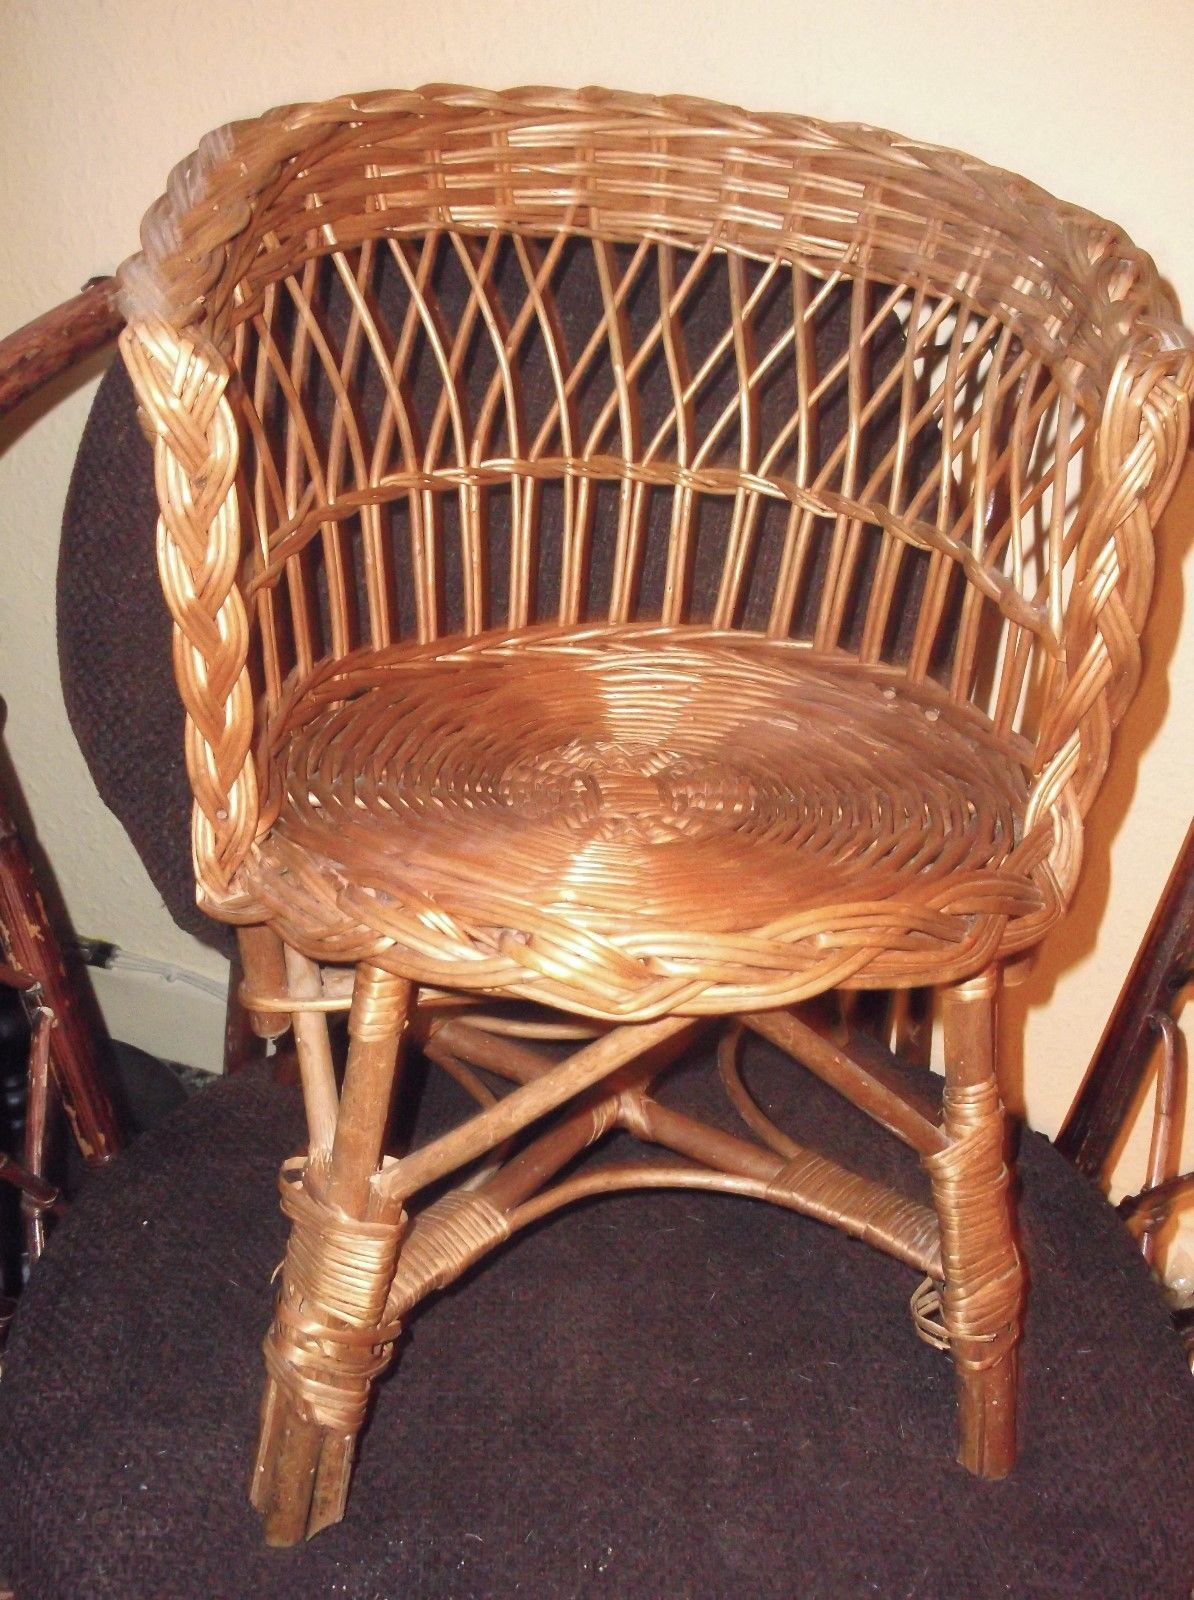 Vintage Rattan Chair Vintage Wicker Woven Rattan Chair Child Or Display For Dolls Teddy Bears